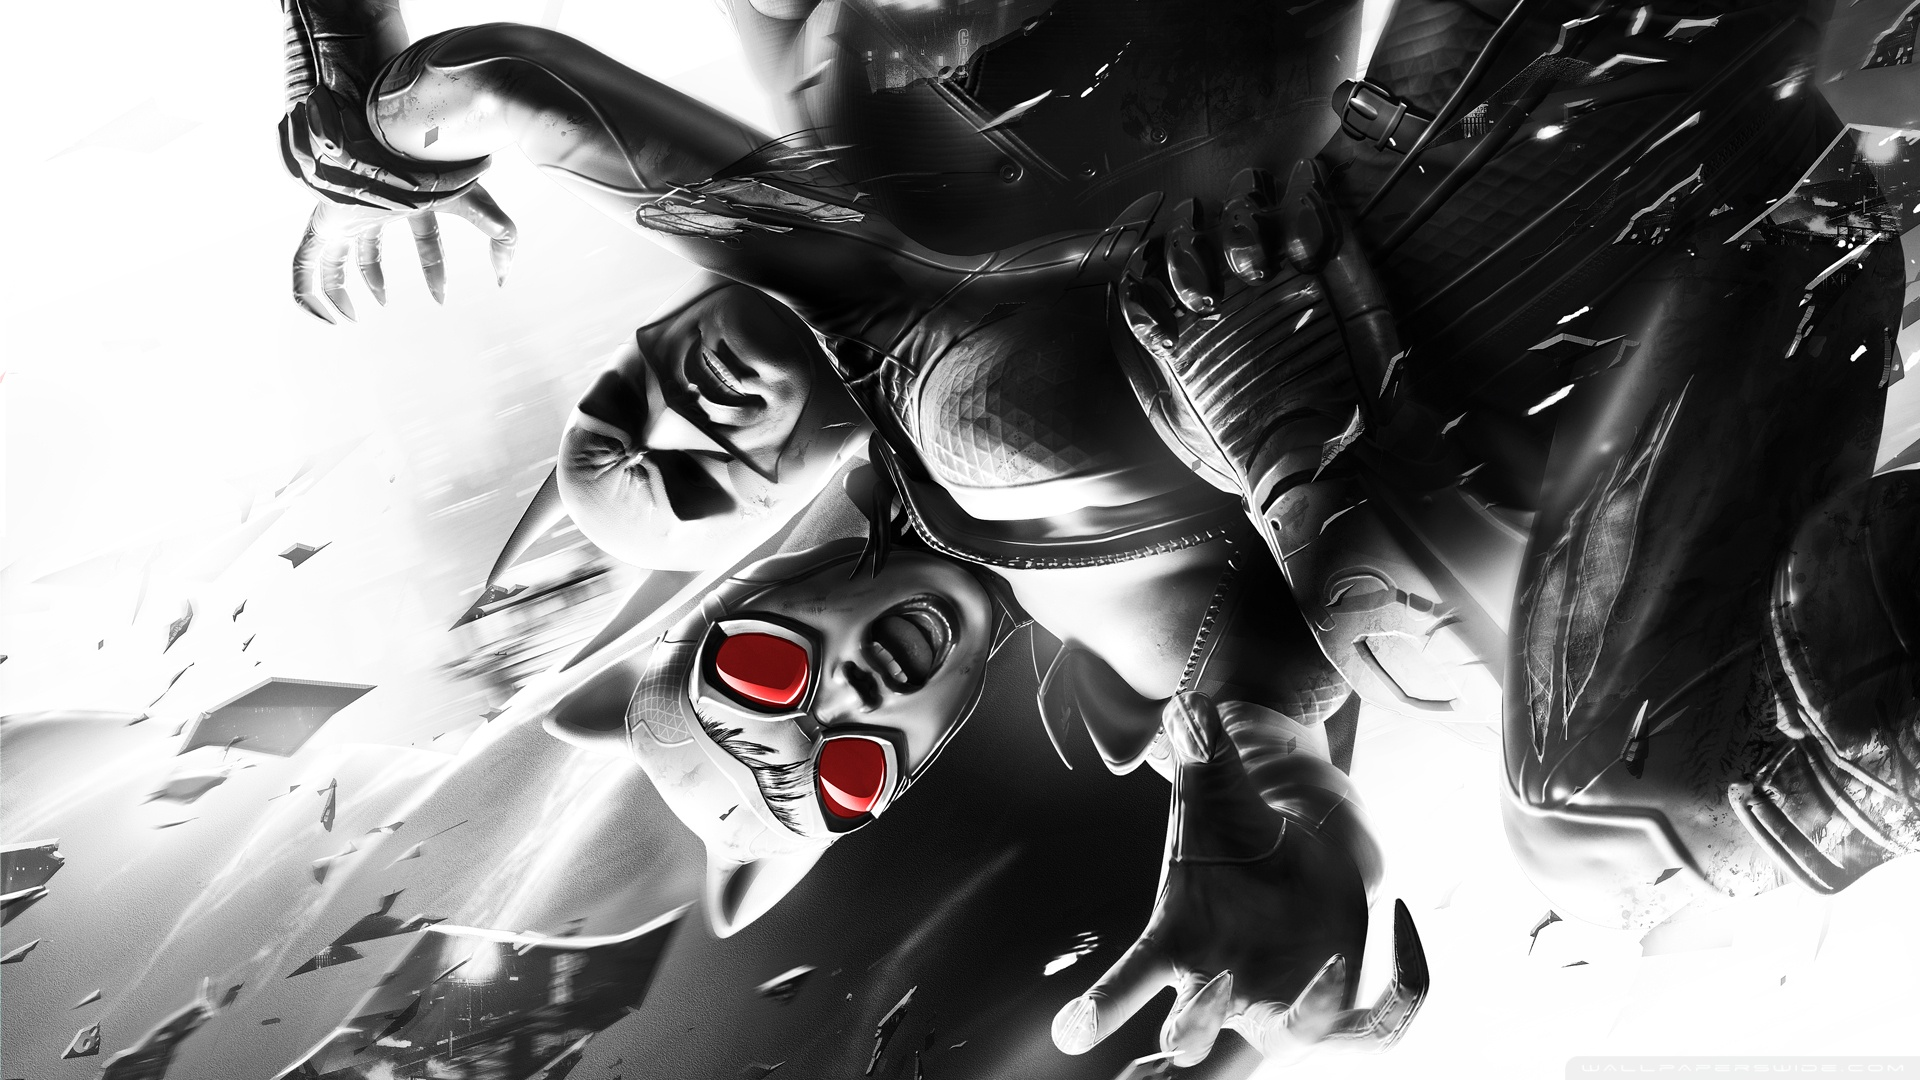 Batman arkham city wallpapers hd 1920x1080 1920x1080